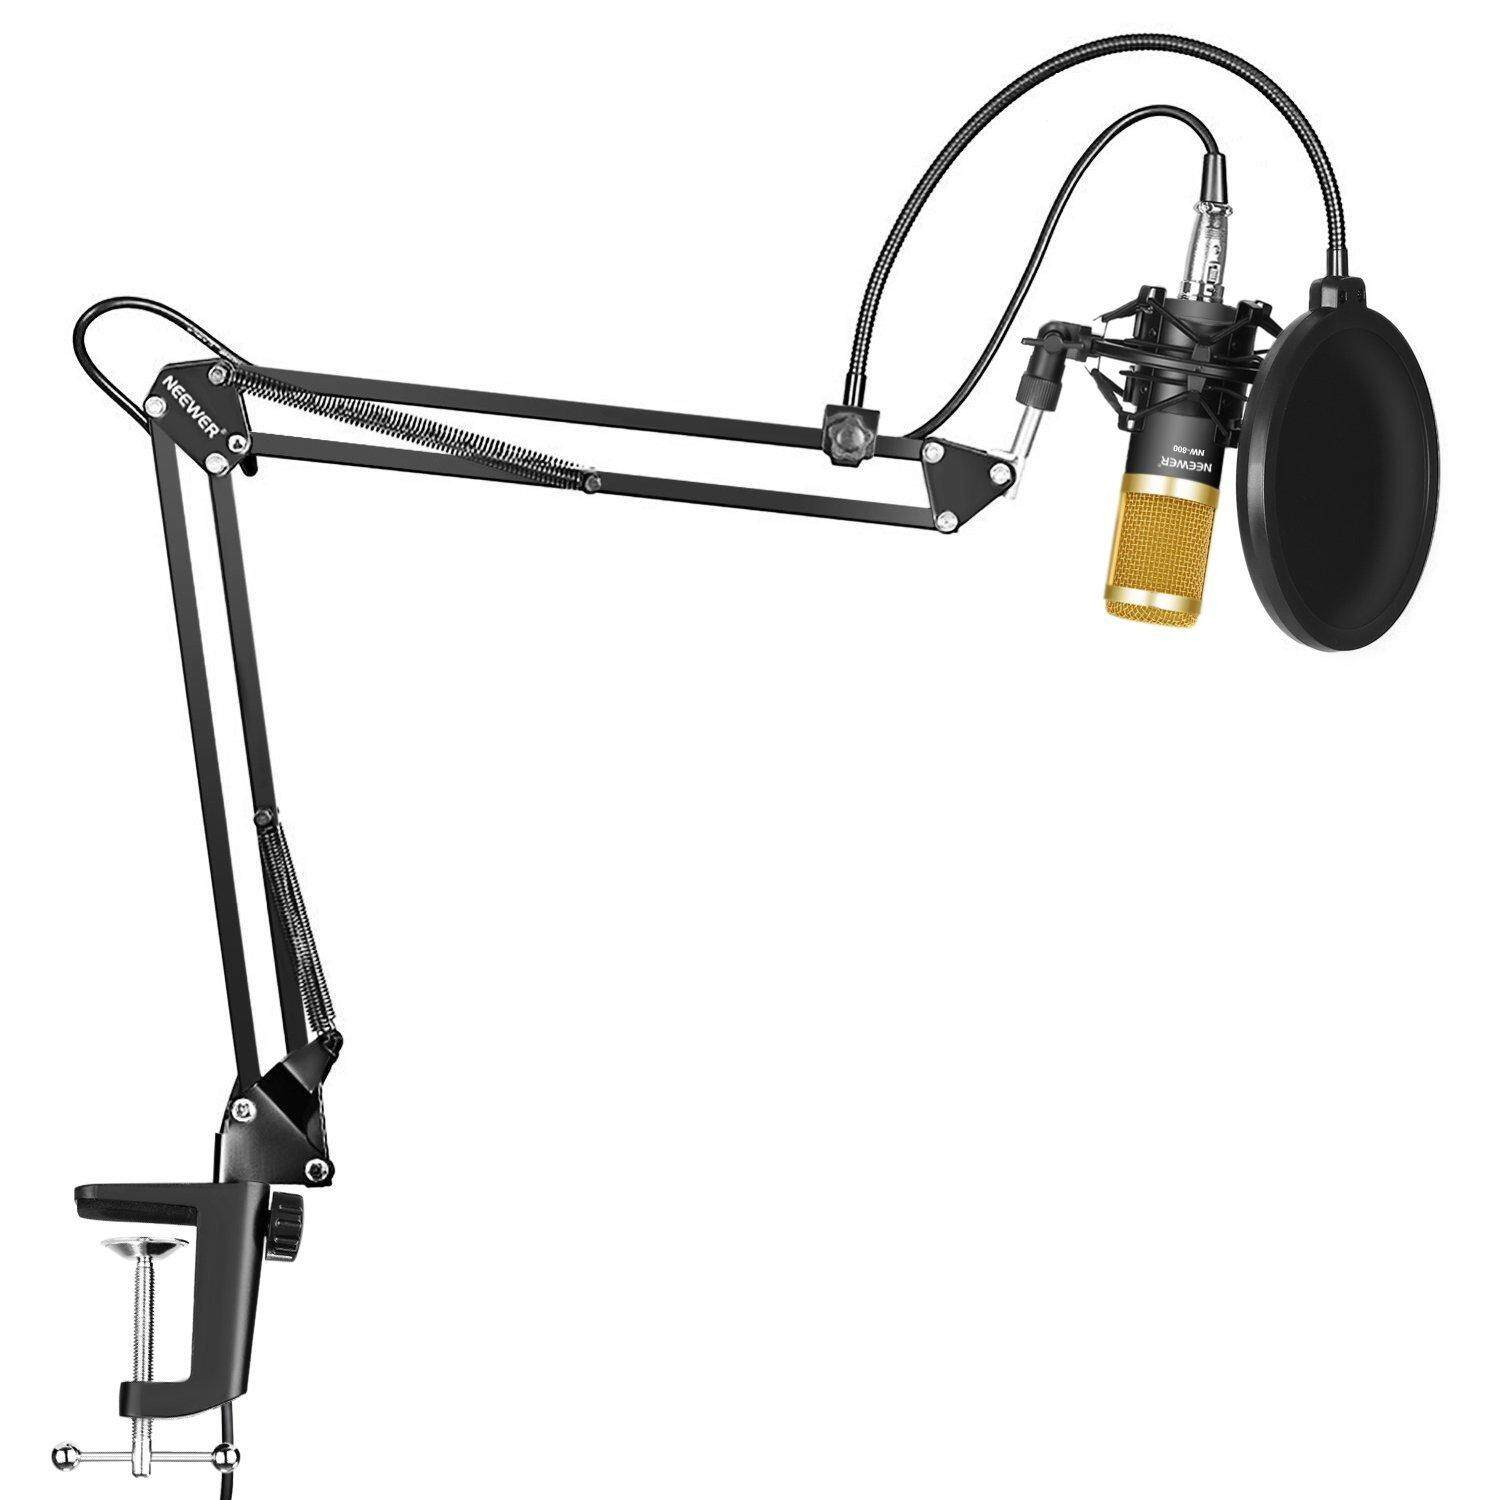 Neewer Professional Studio Broadcasting Recording Condenser Microphone & Nw- 35 Adjustable Recording Microphone Suspension Scissor Arm Stand With Shock Mount And Mounting Clamp Kit By Alawrex Technology.